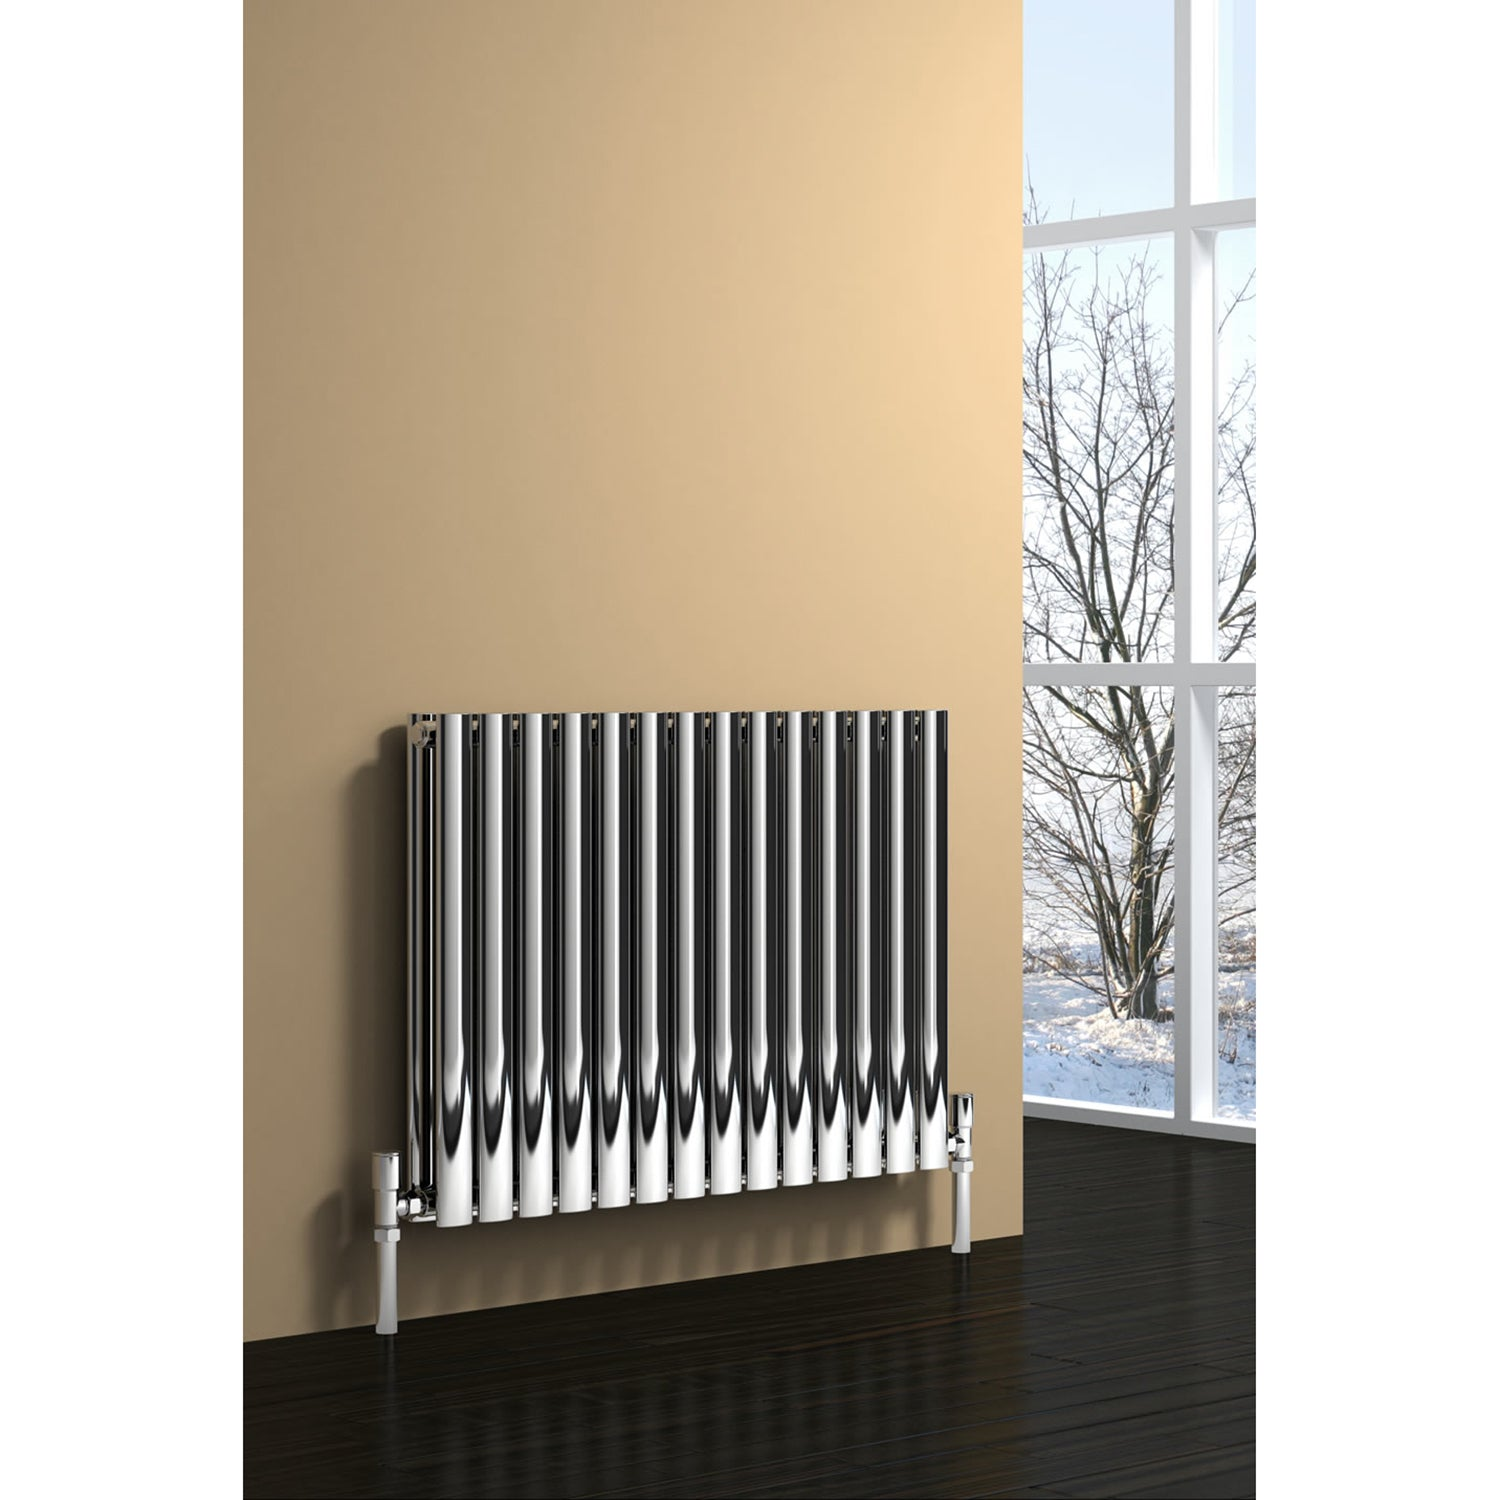 Reina Nerox Double Brushed Designer Radiator